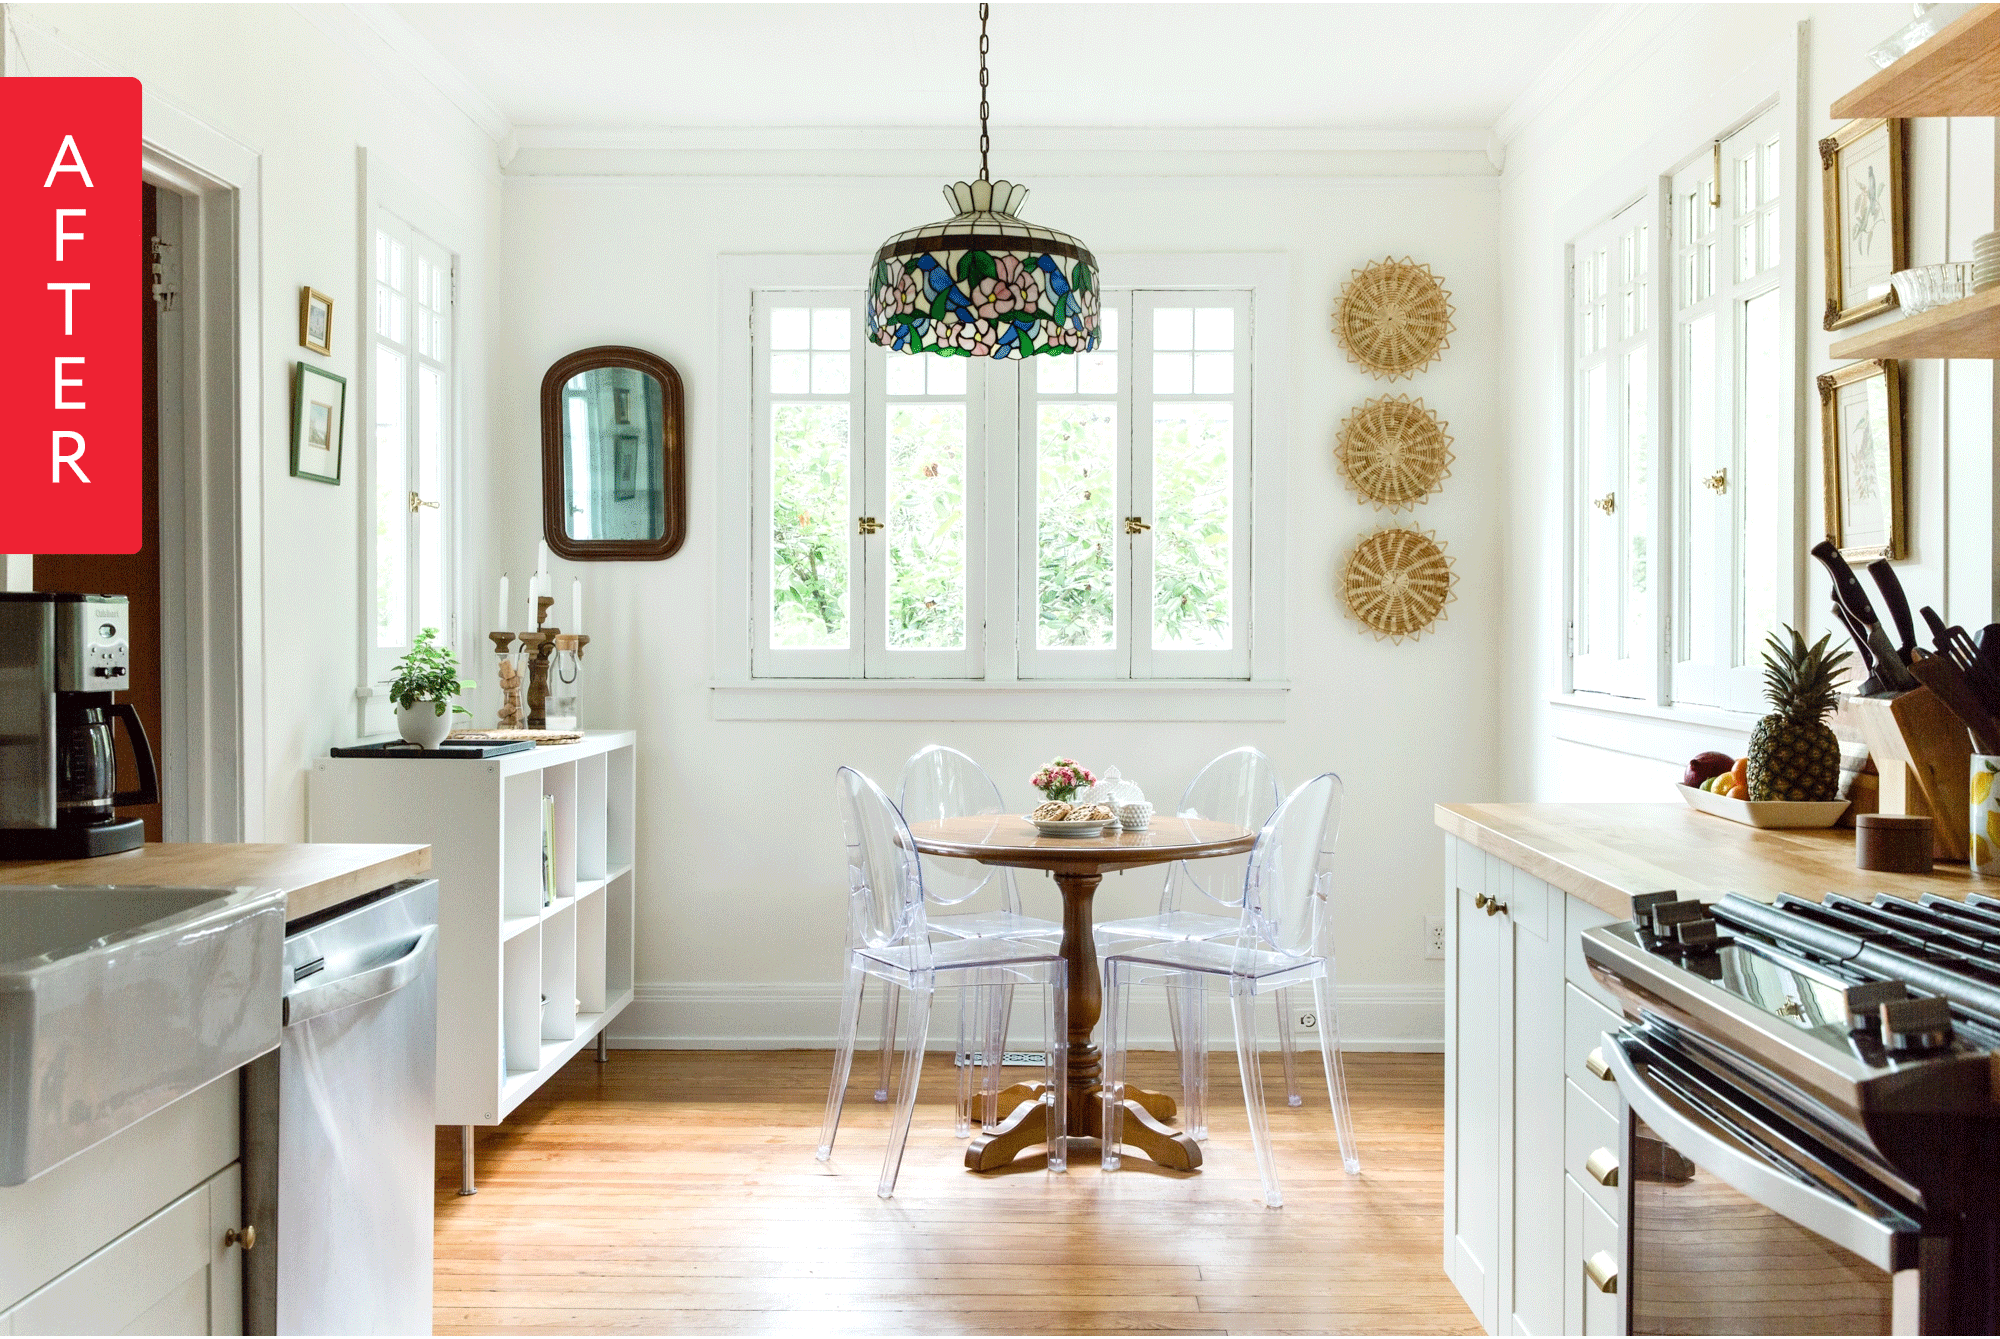 Before & After: DIY Novices Transform a Dilapidated Kitchen